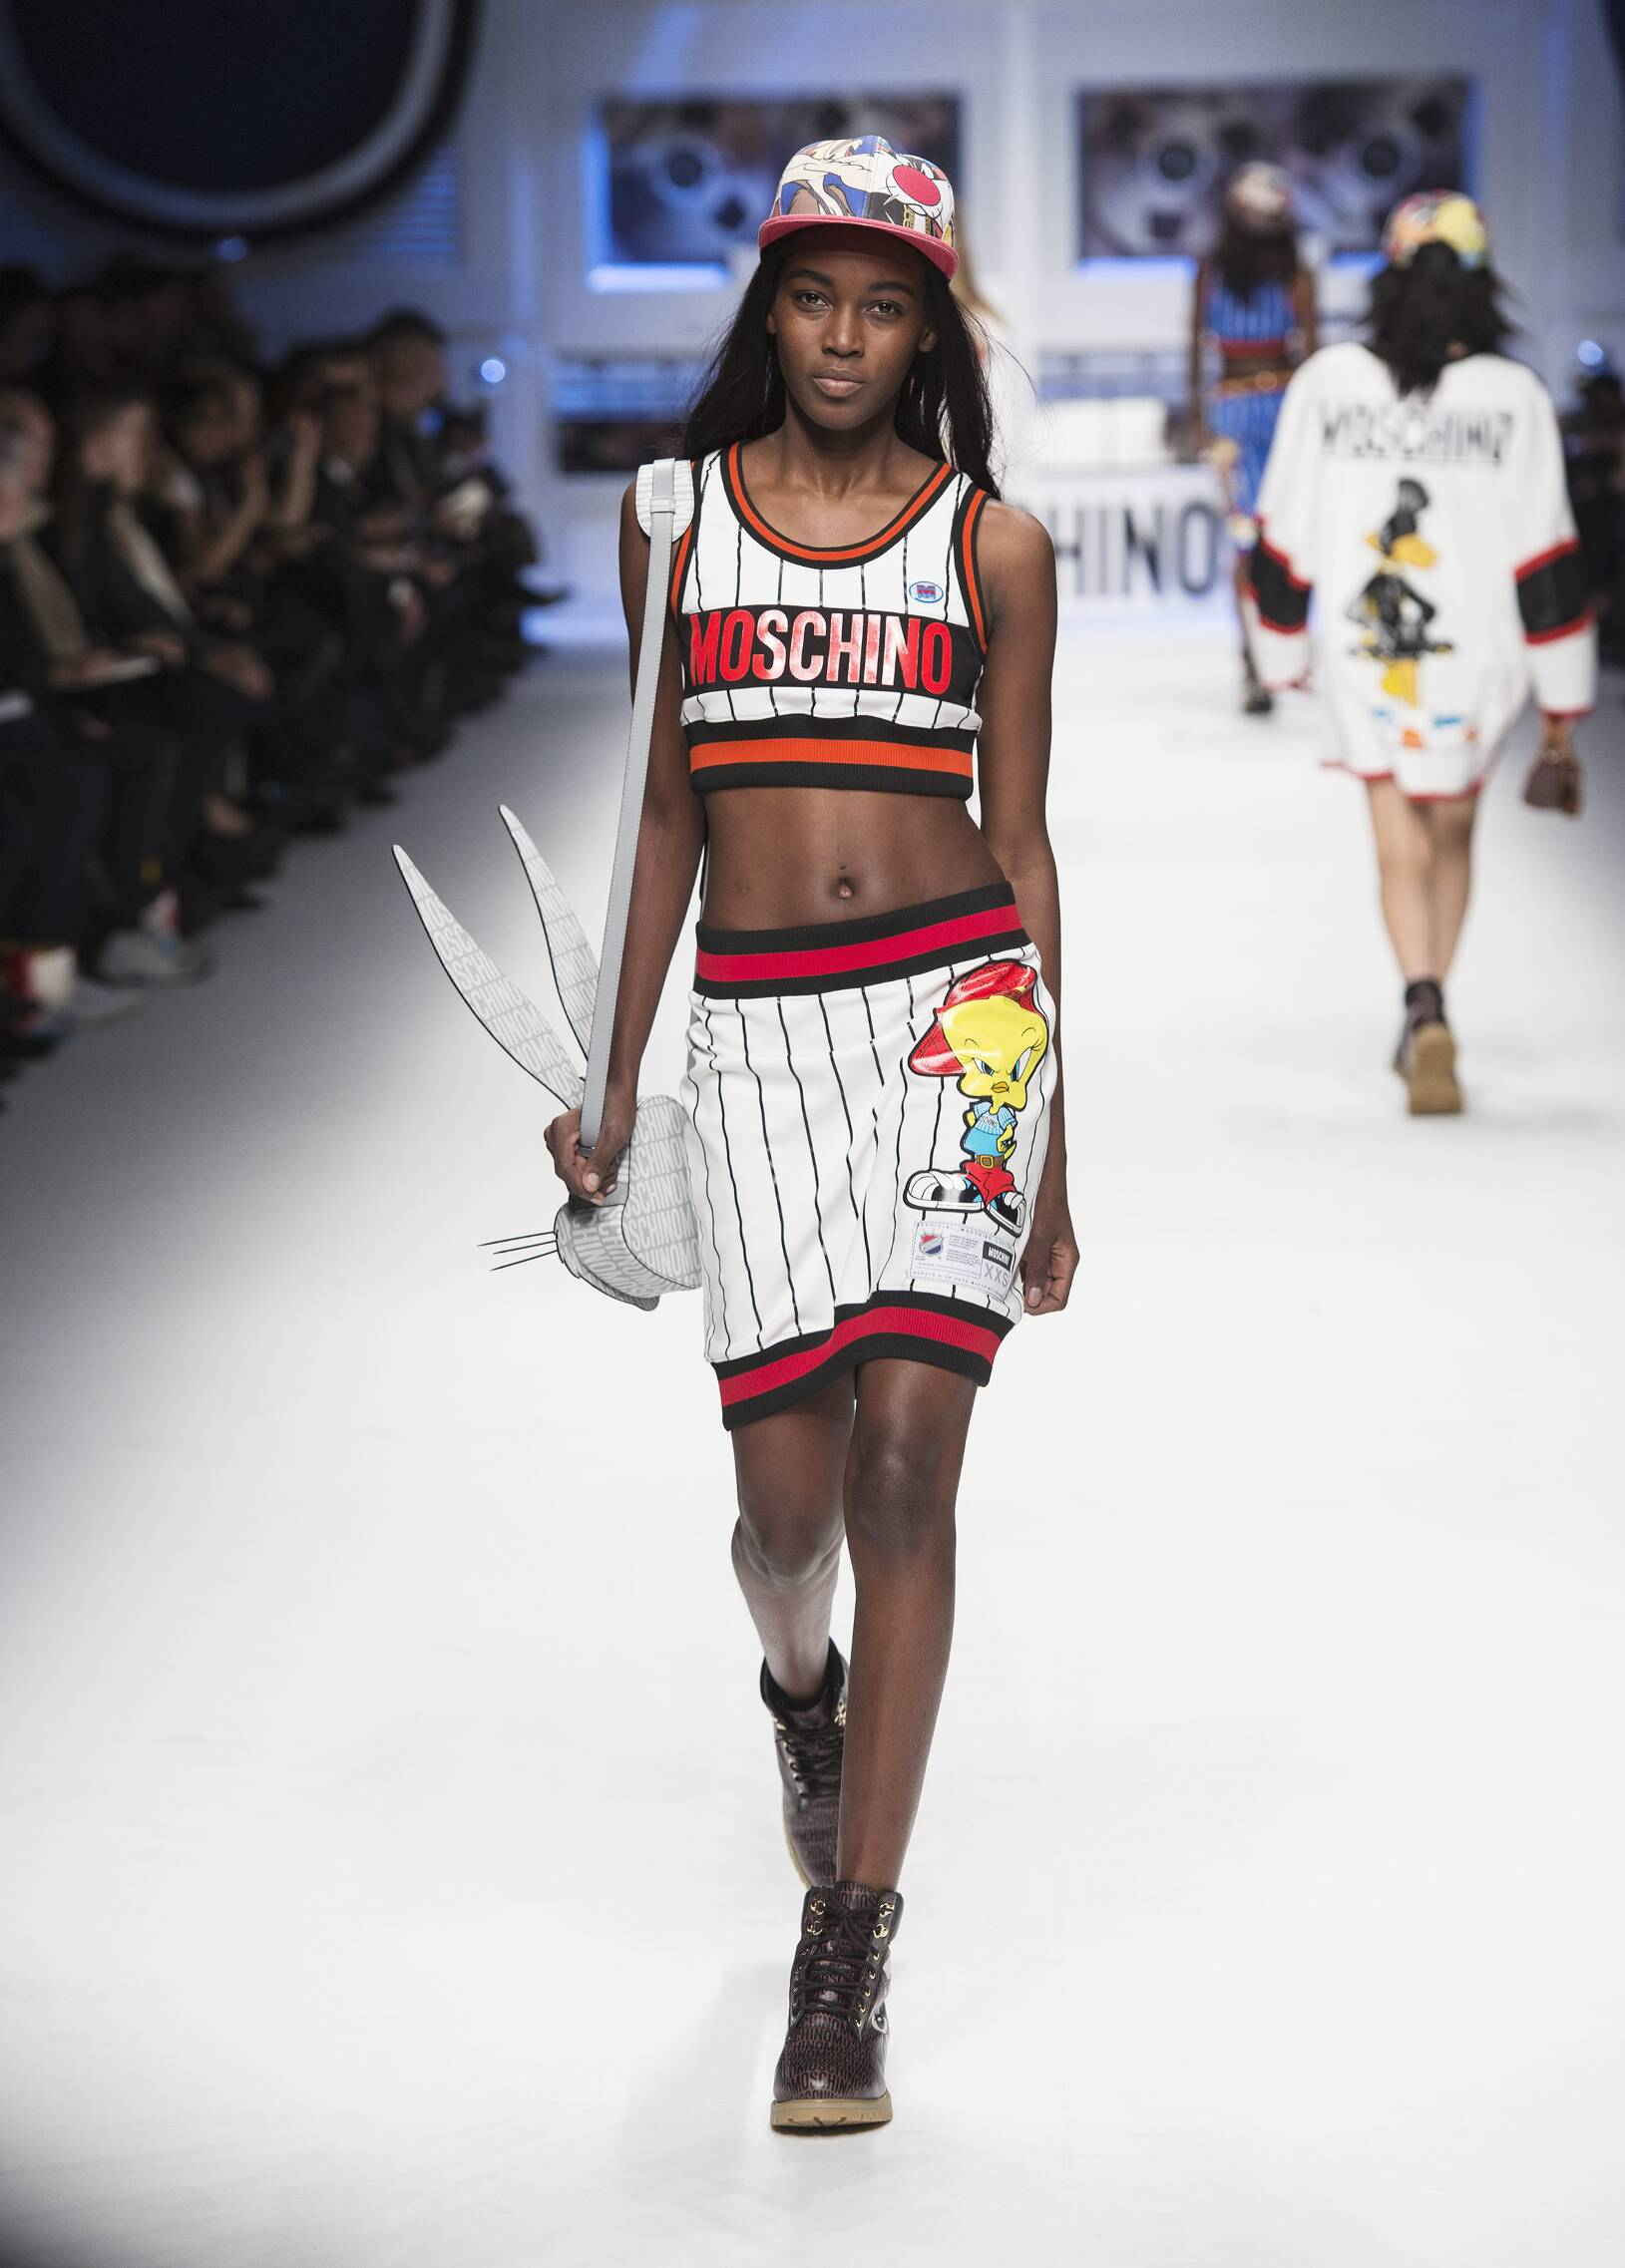 Moschino Collection Woman Milan Fashion Week